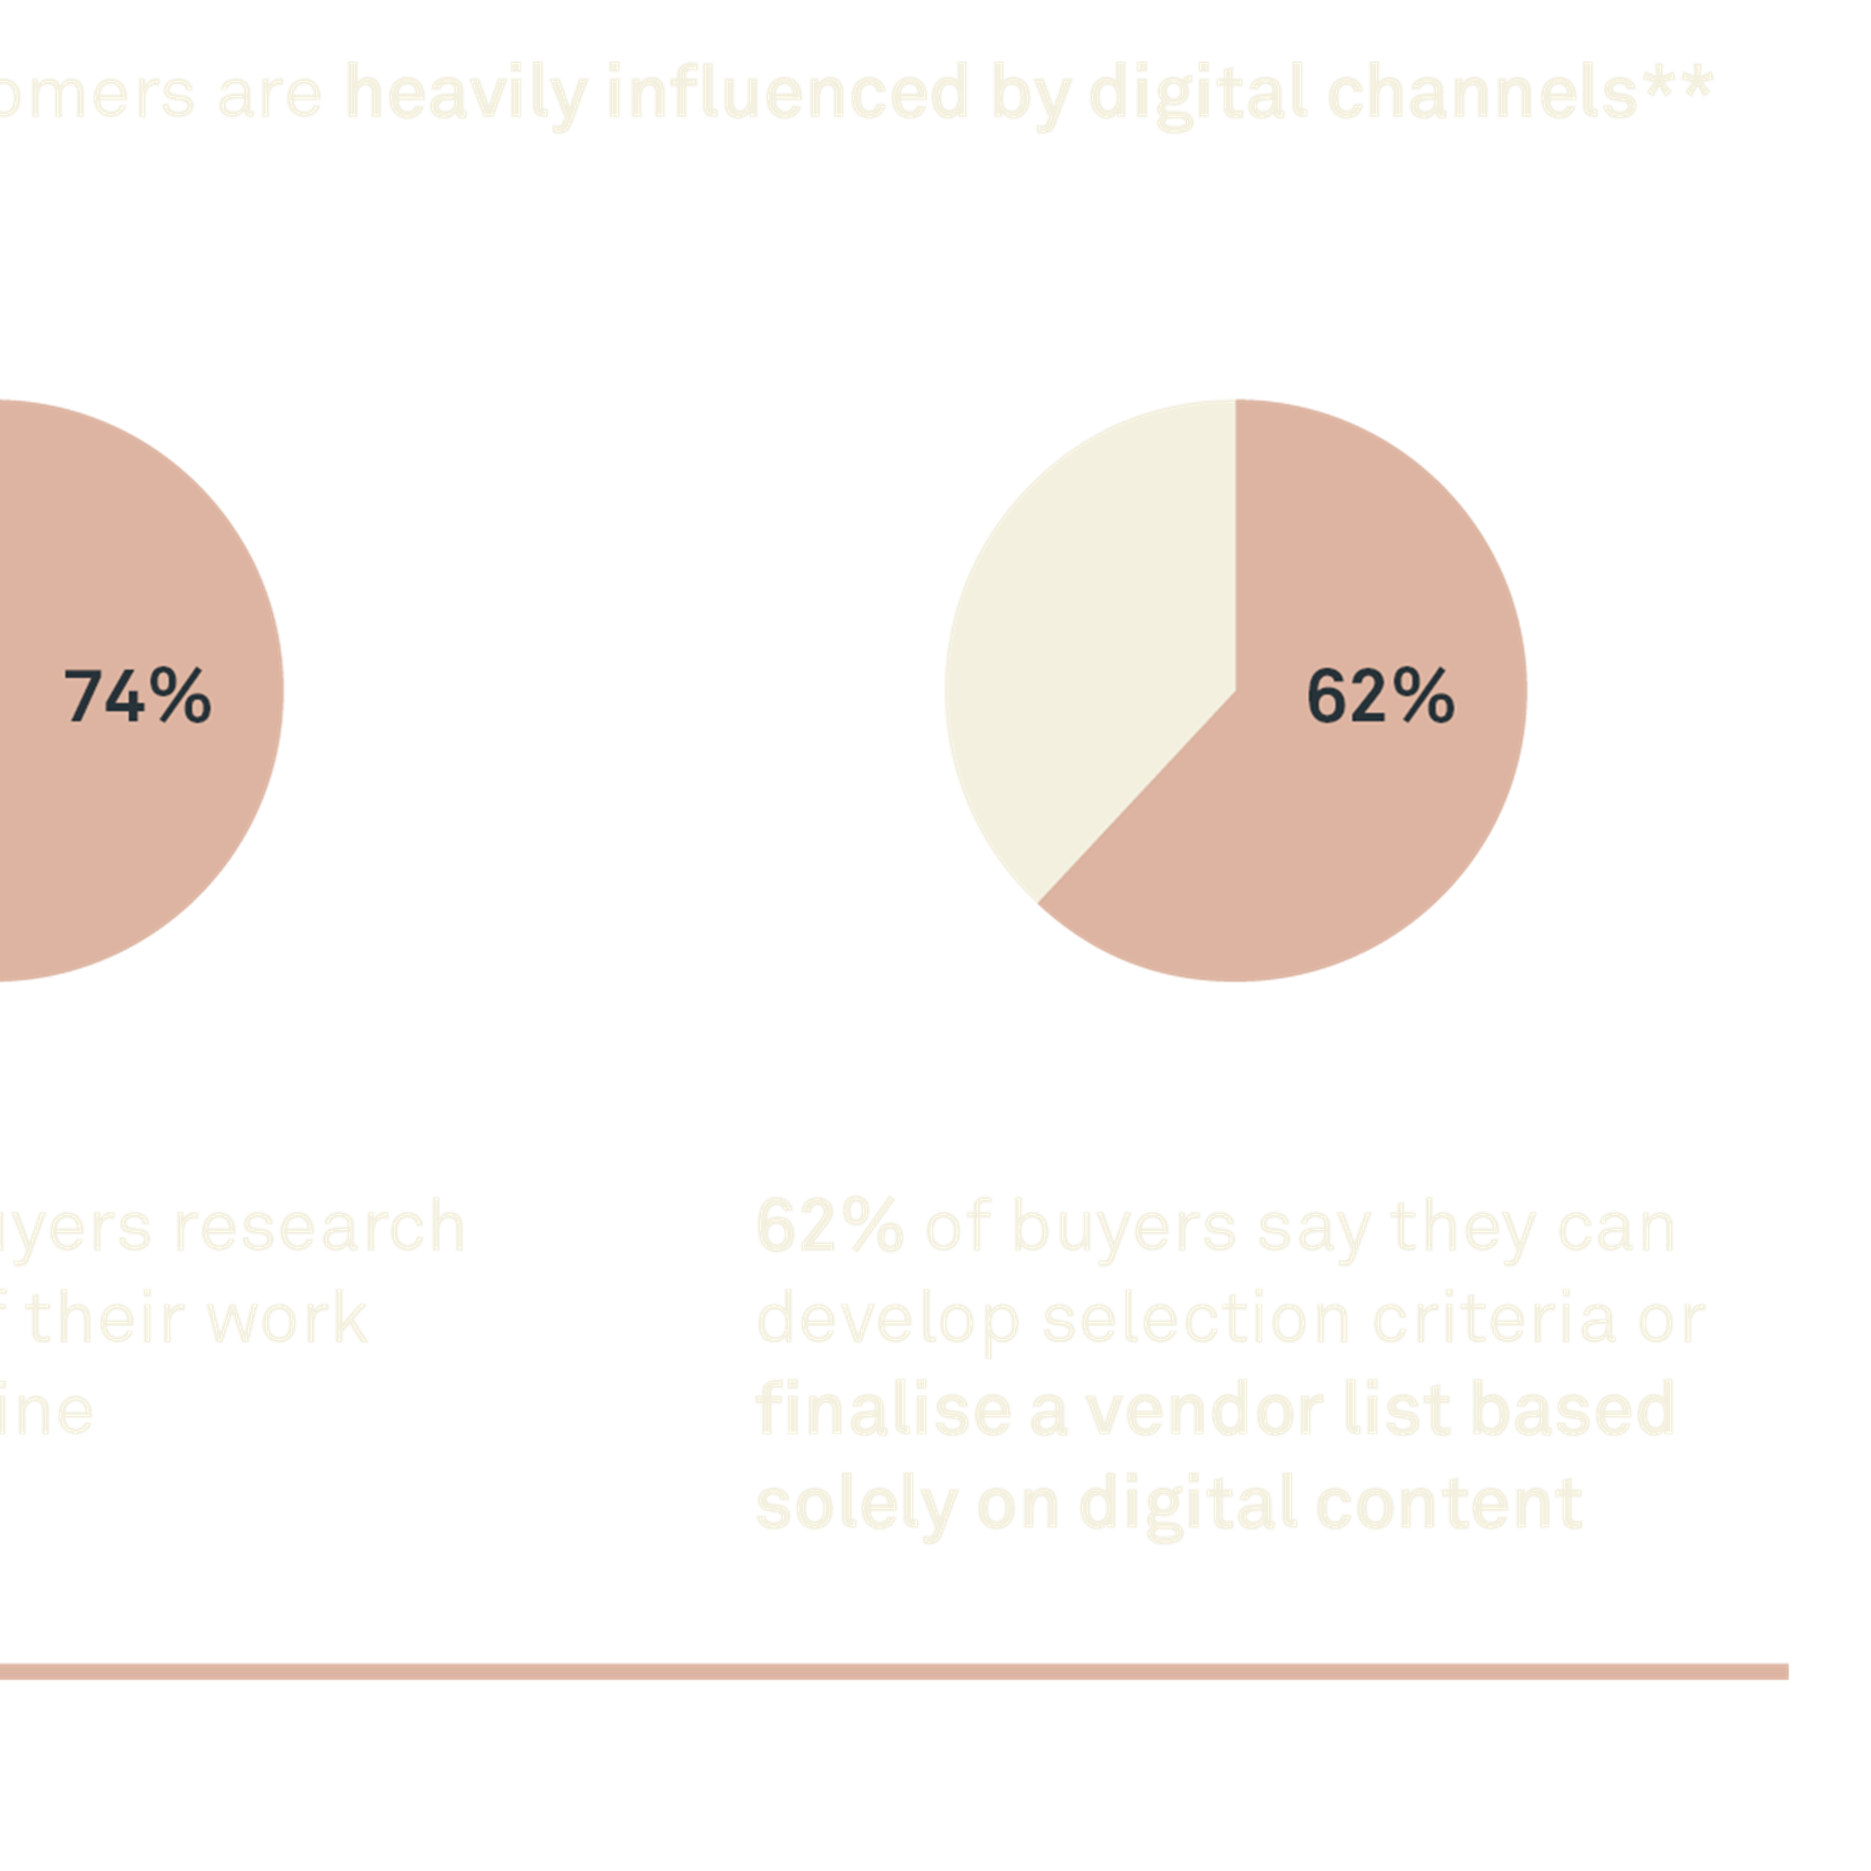 Customers are heavily influenced by digital channels